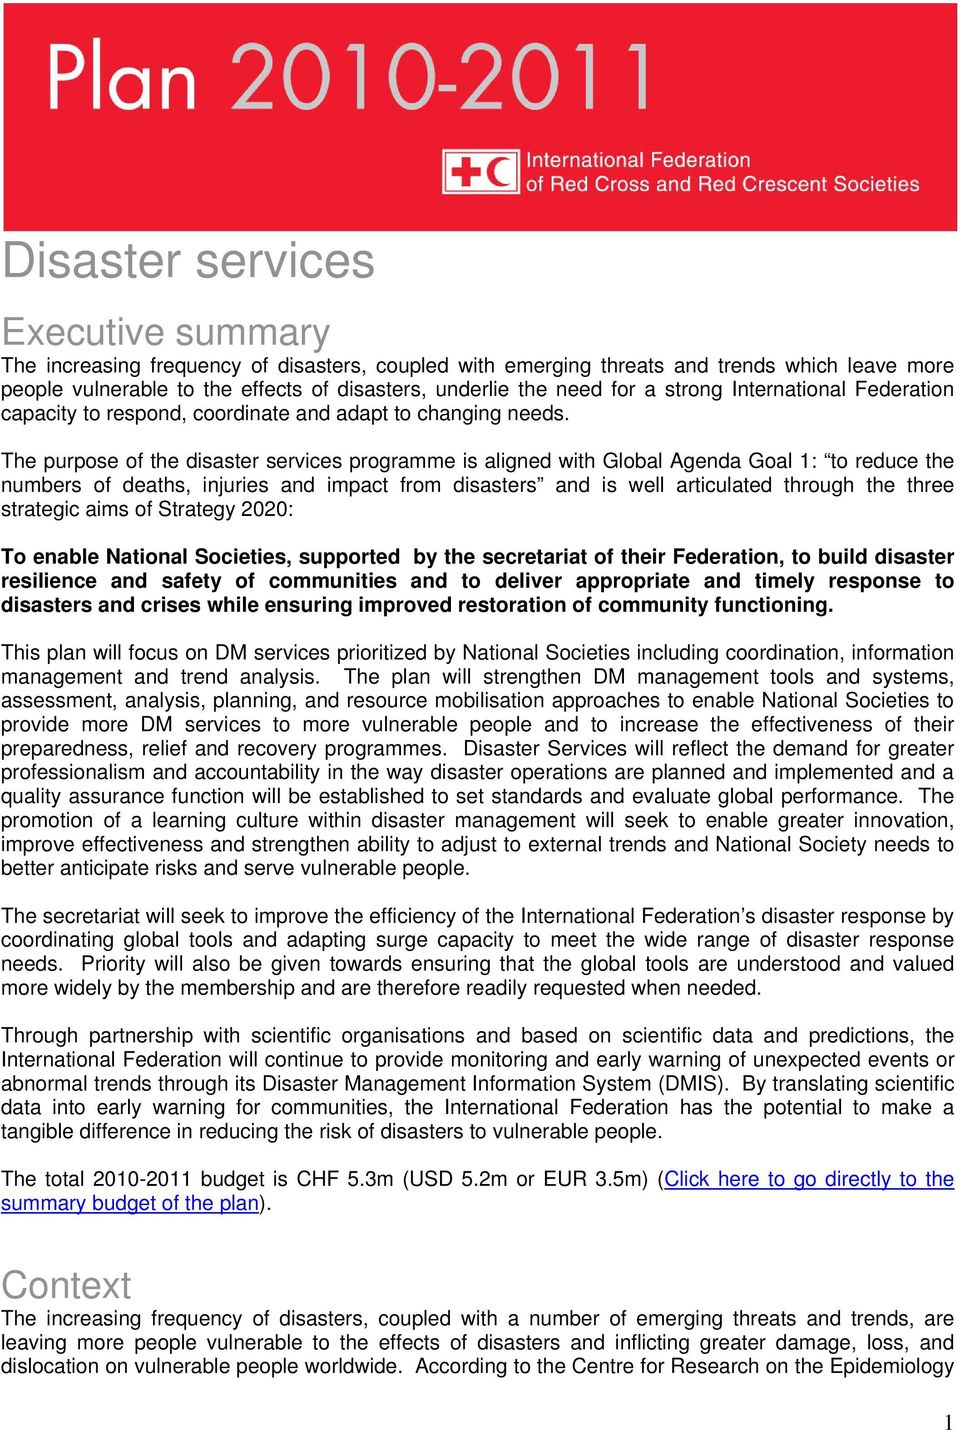 The purpose of the disaster services programme is aligned with Global Agenda Goal 1: to reduce the numbers of deaths, injuries and impact from disasters and is well articulated through the three